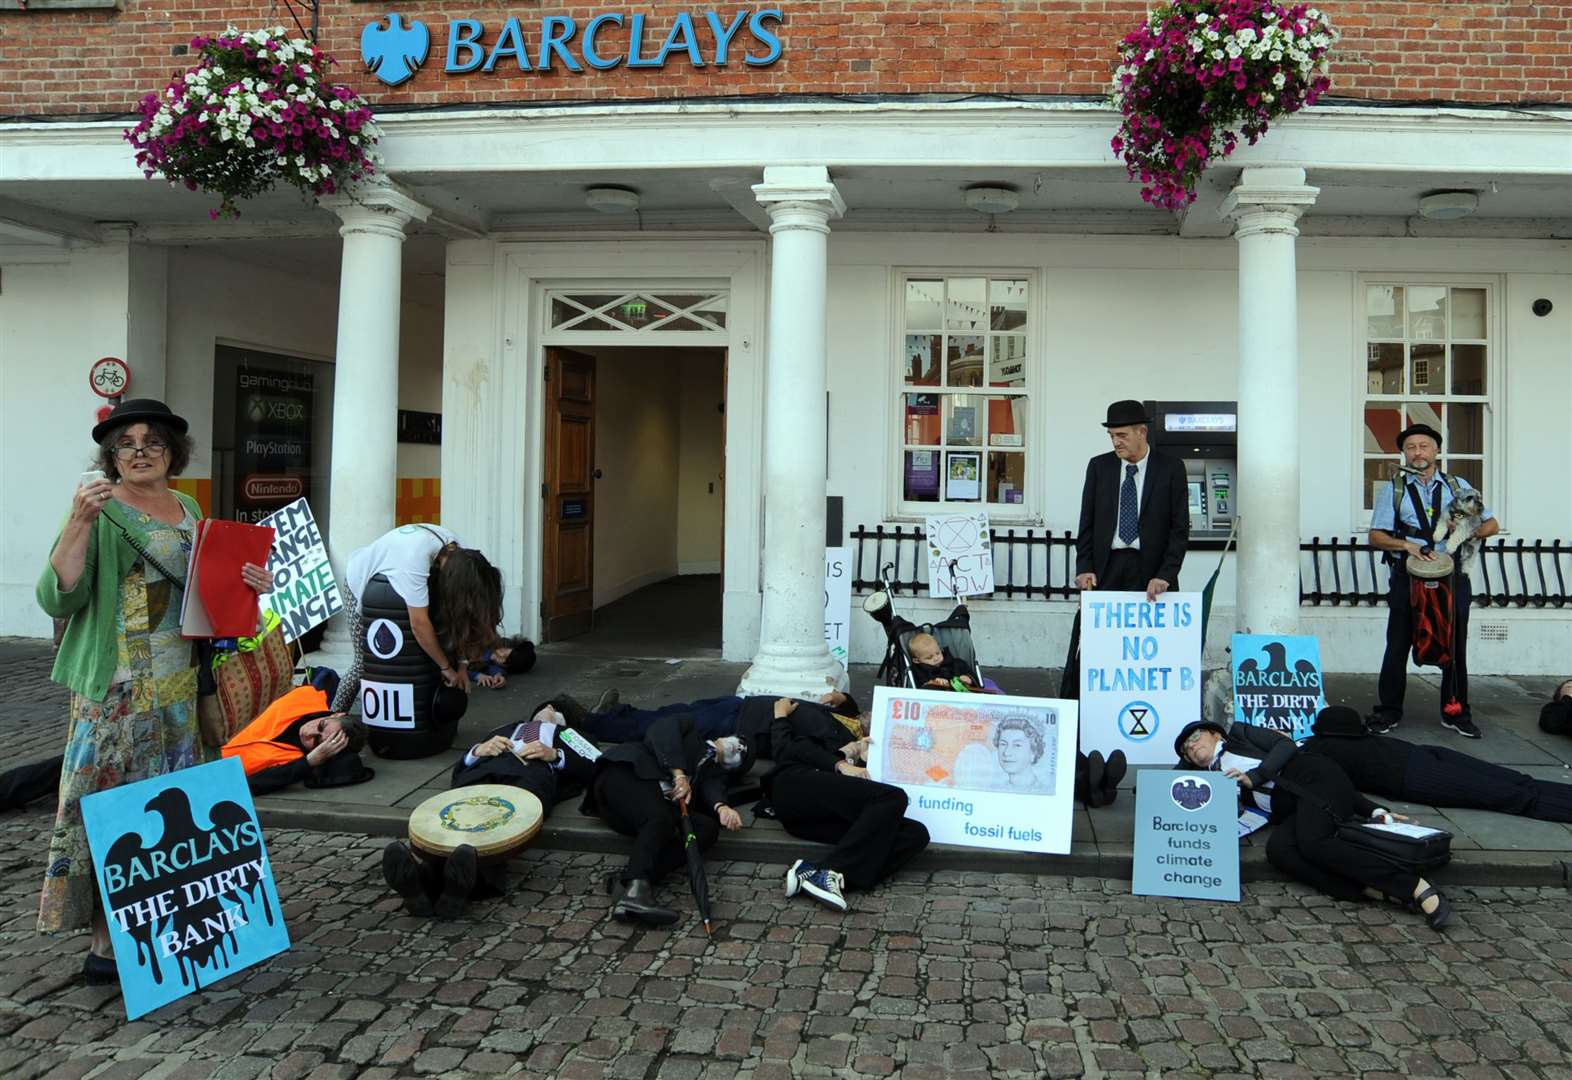 Rebels stage 'die-in' outside Barclays Bank